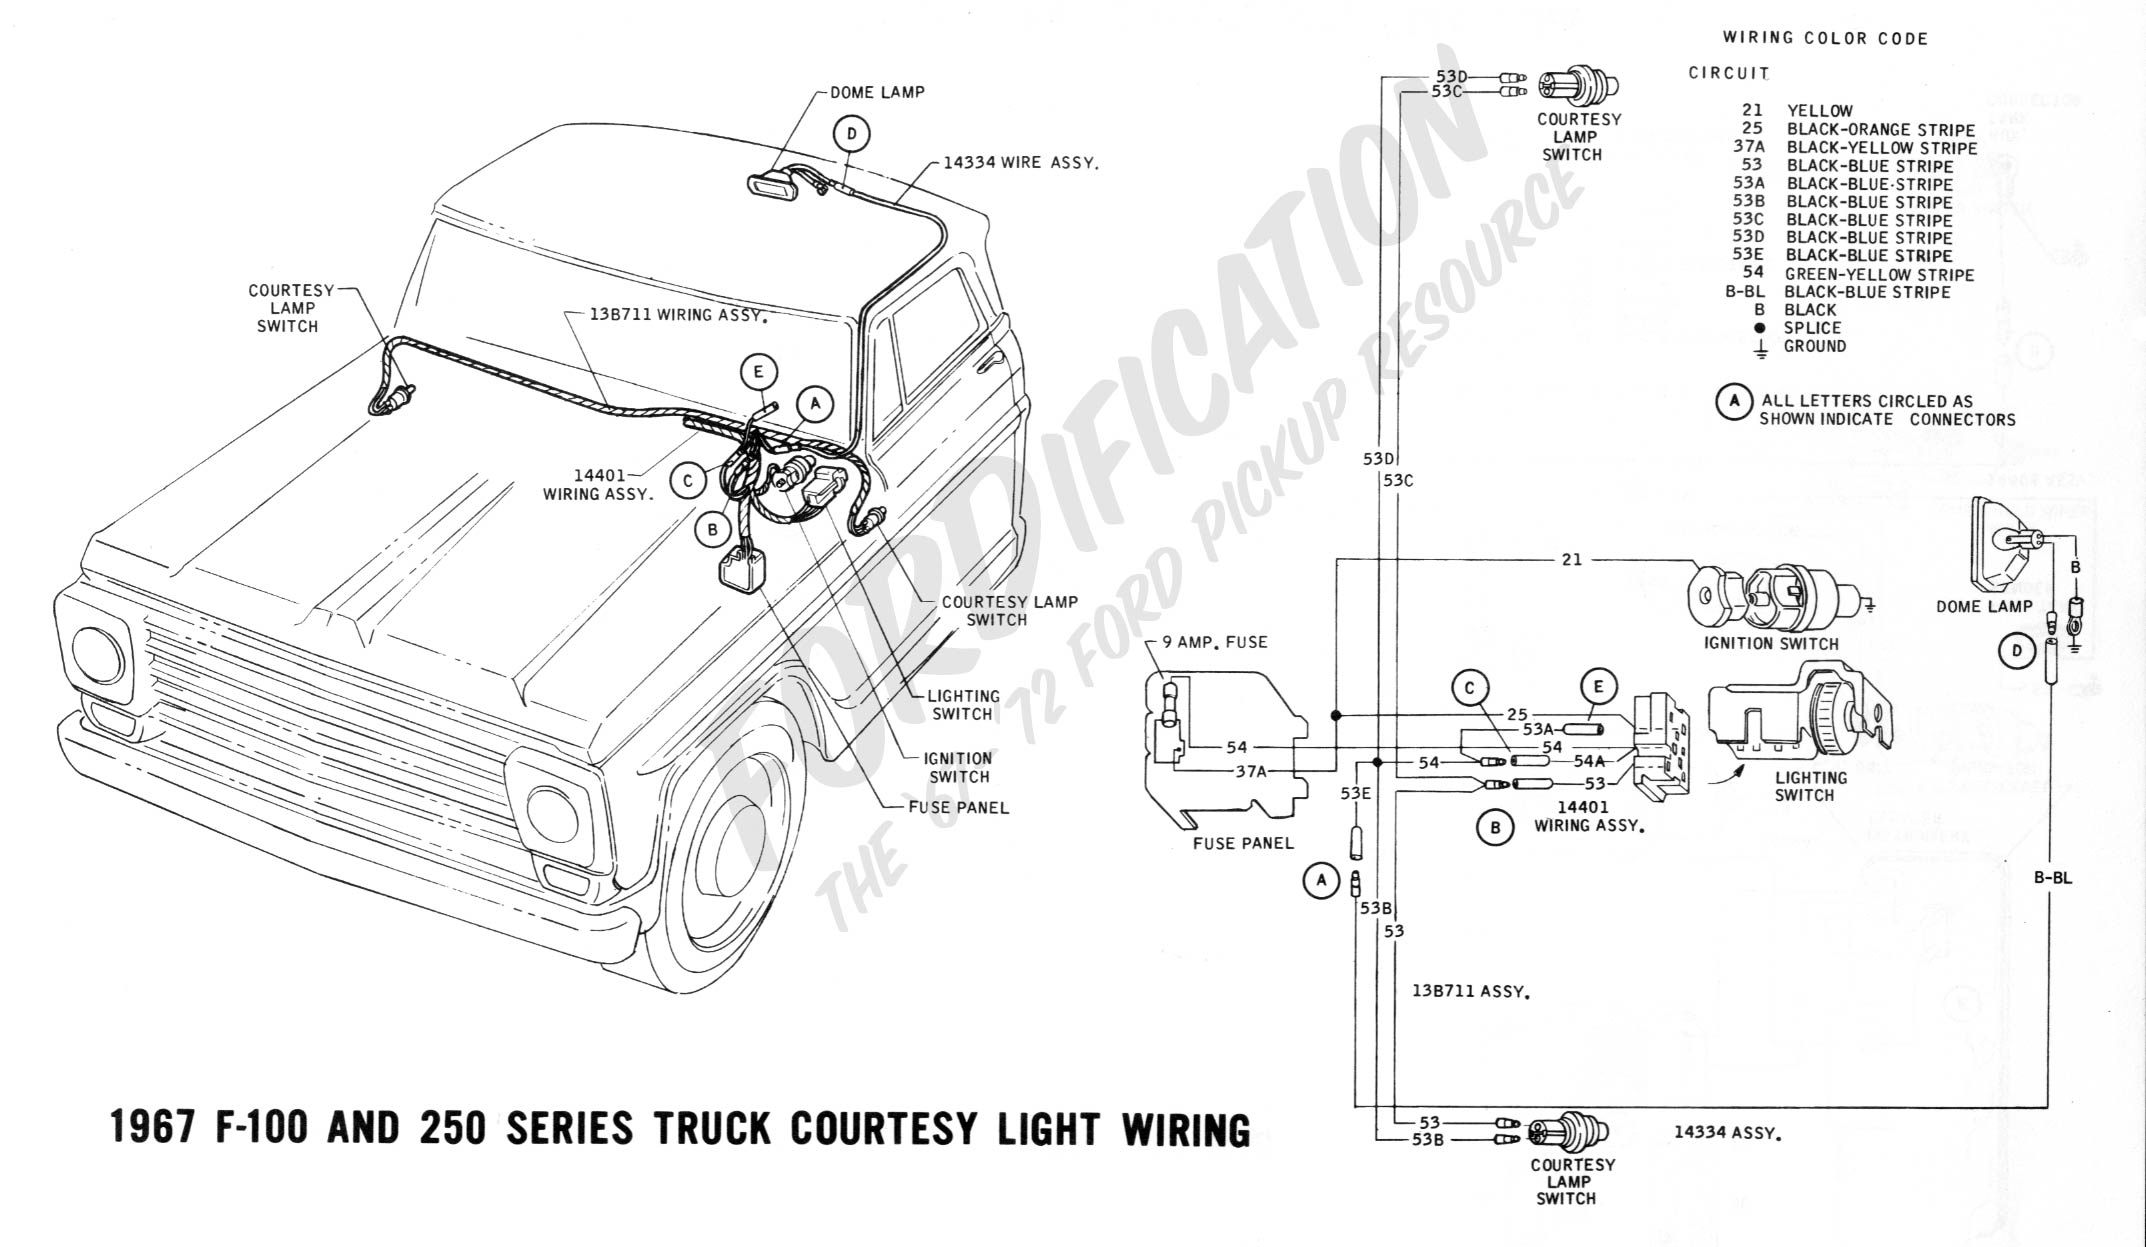 wiring 1967courtesylight ford truck technical drawings and schematics section h wiring 2003 ford f250 ignition switch wiring diagram at bayanpartner.co